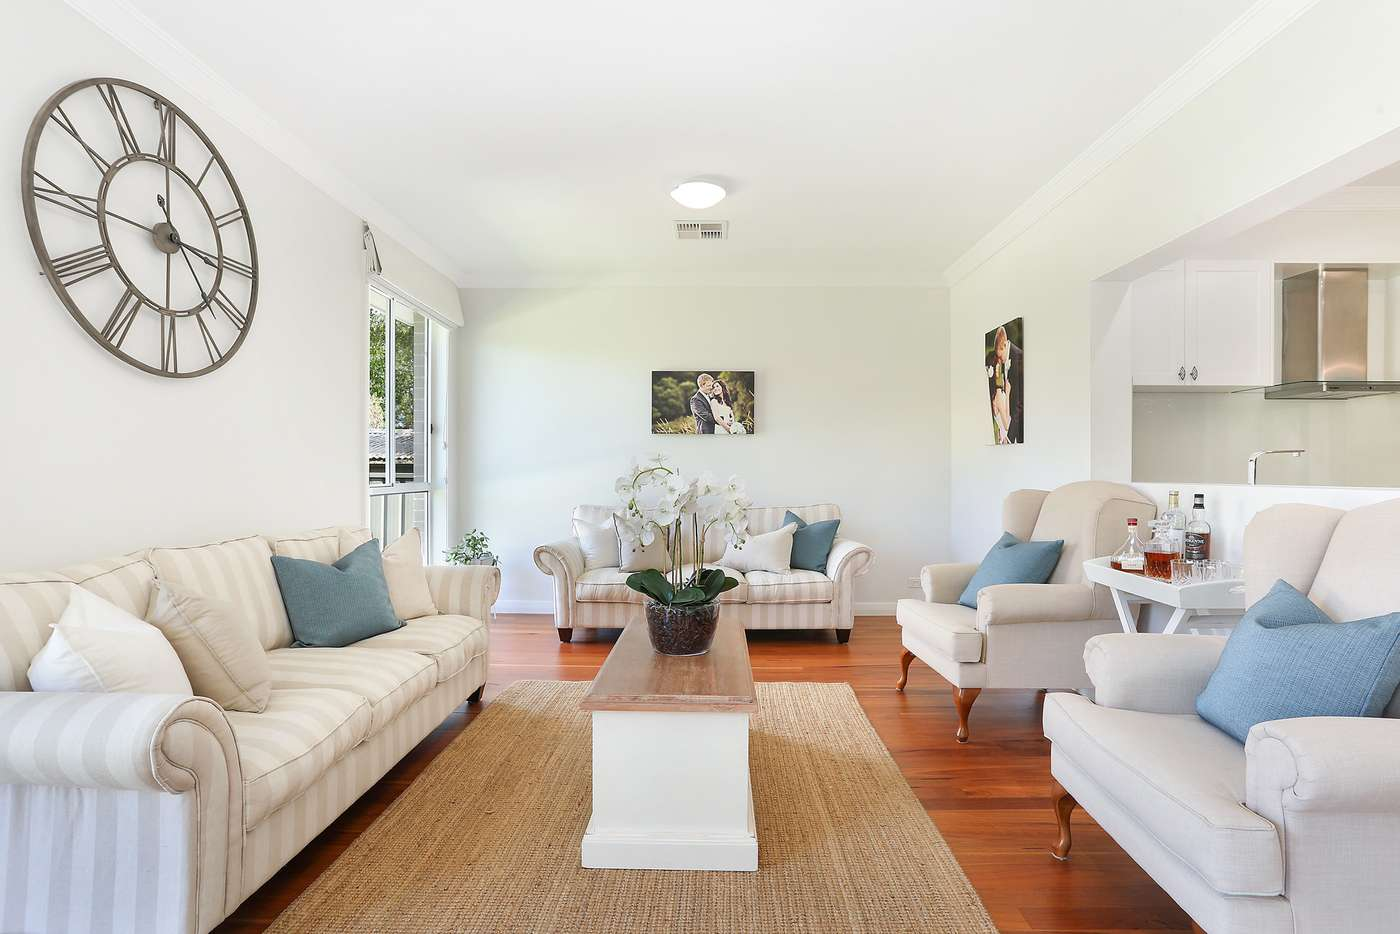 Fifth view of Homely house listing, 2 Macarthur Avenue, Strathfield NSW 2135